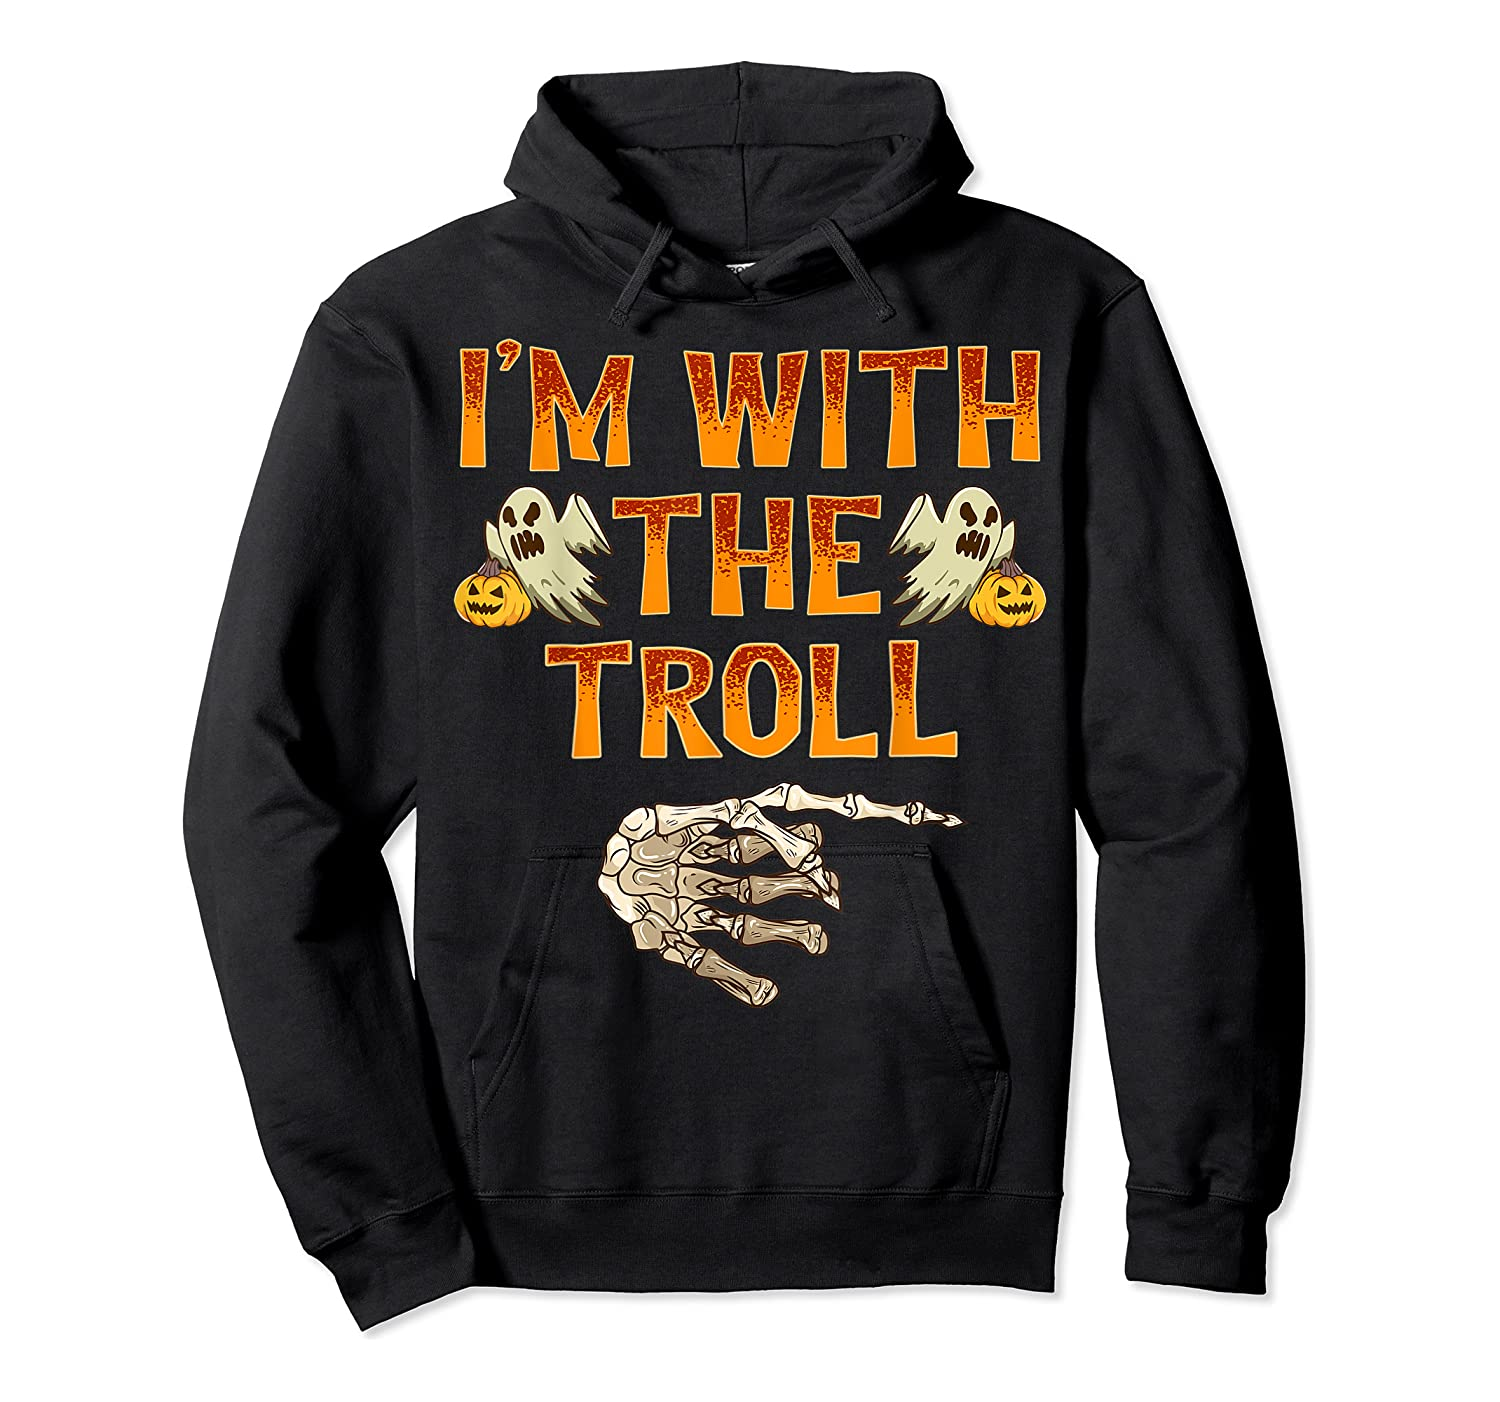 I'm With The Troll Costume Funny Halloween Couple Shirts Unisex Pullover Hoodie